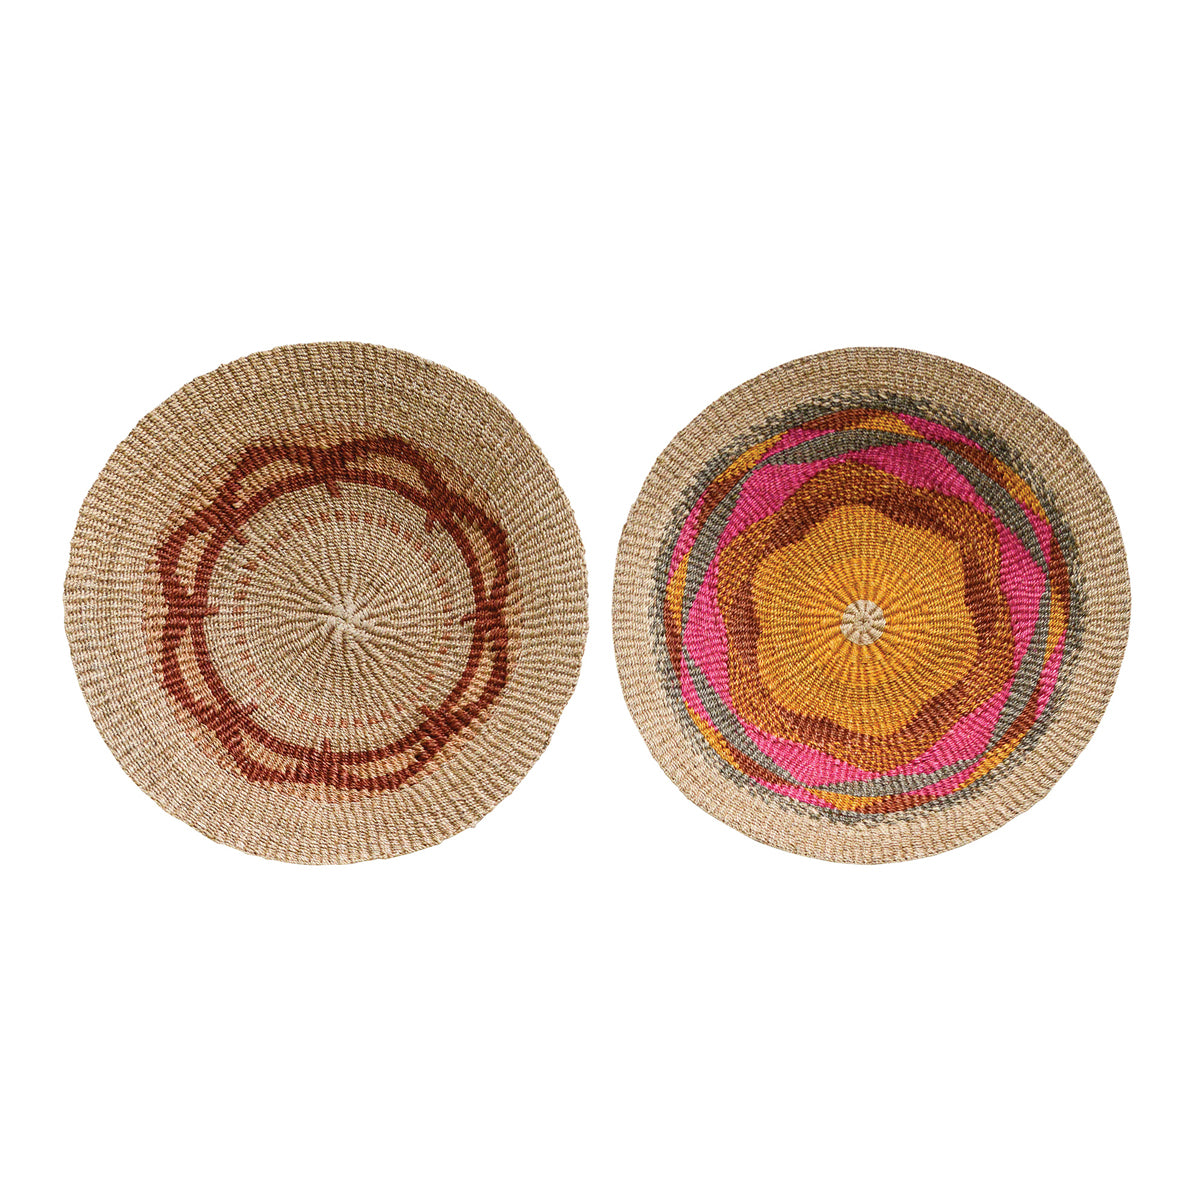 Wall Basket, Multi-color, Jute 60cm